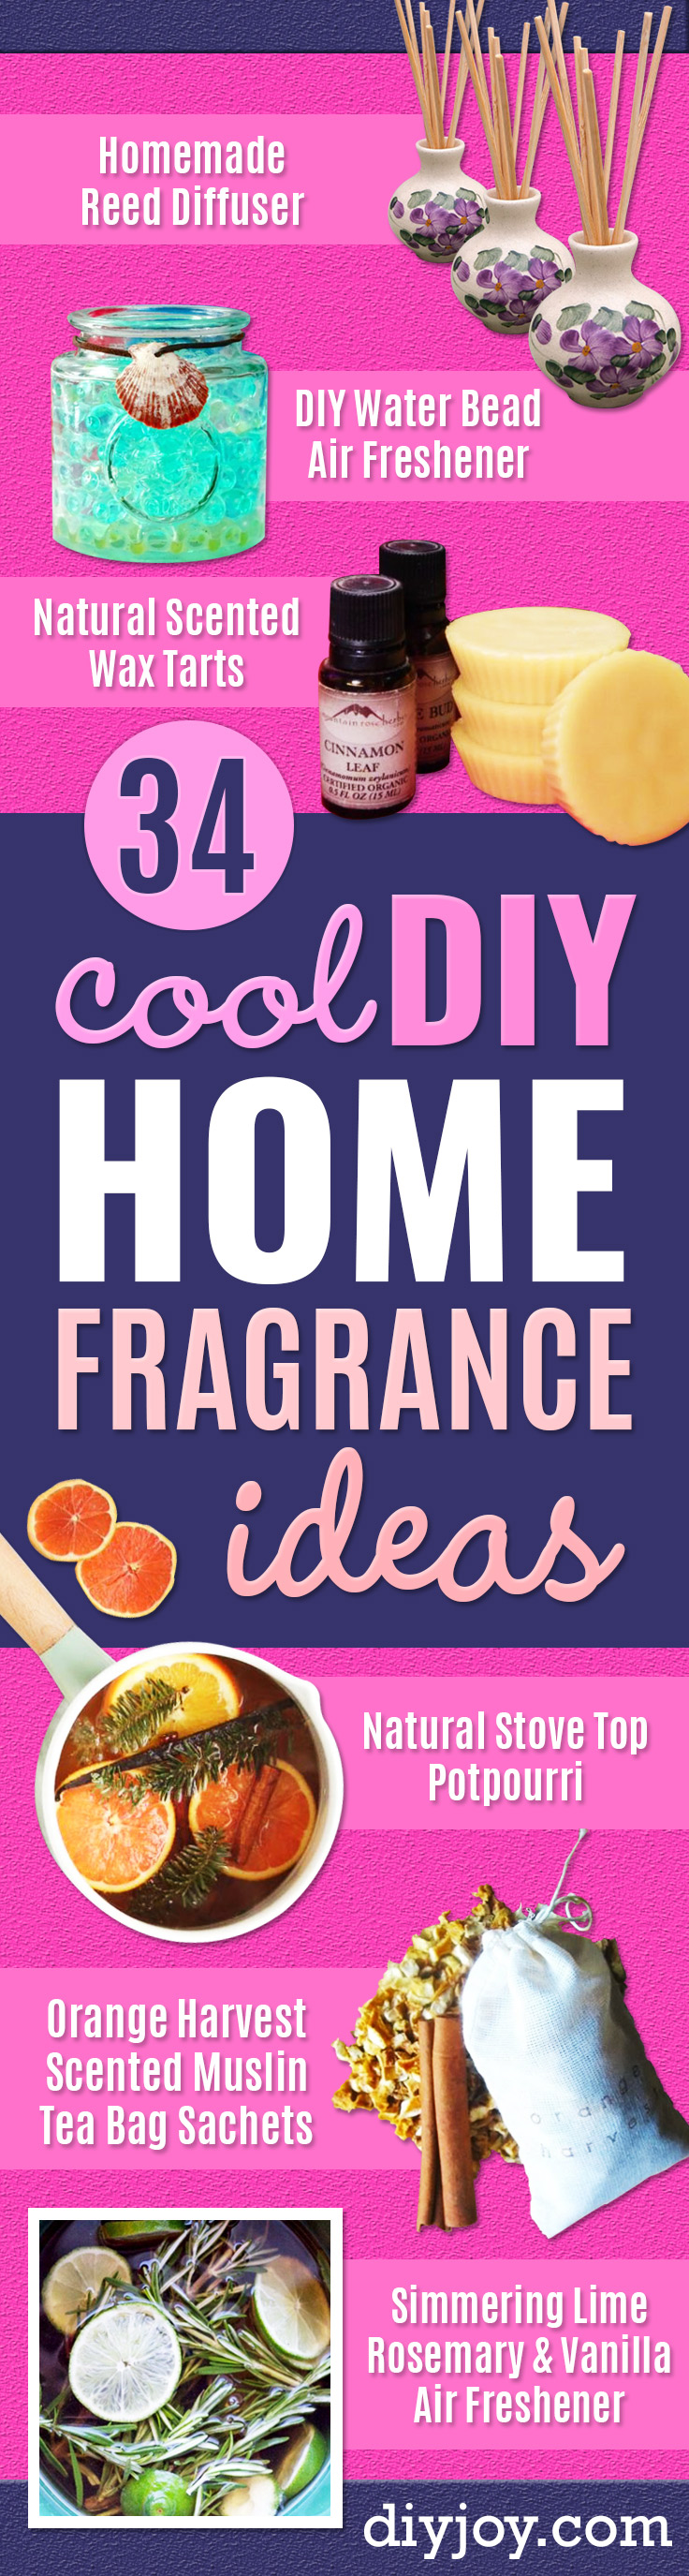 DIY Home Fragrance Ideas - Easy Ways To Make your House and Home Smell Good - Essential Oils, Diffusers, DIY Lampe Berger Oil, Candles, Room Scents and Homemade Recipes for Odor Removal - Relaxing Lavender, Fresh Clean Smells, Lemon, Herb